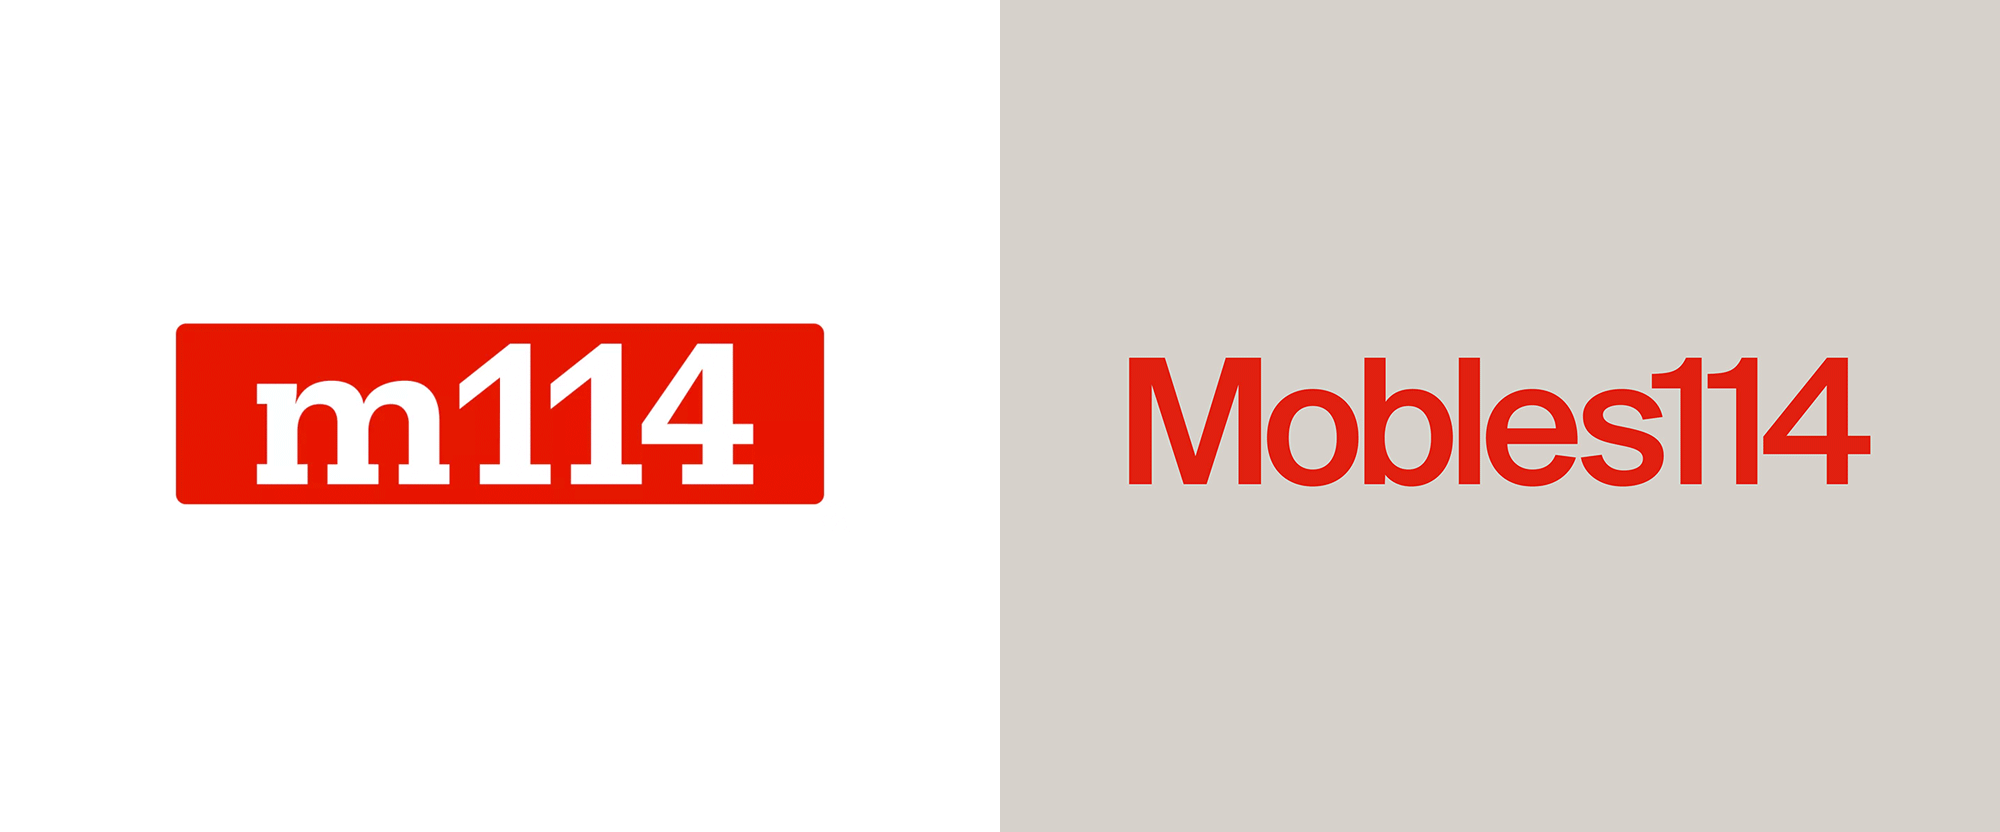 New Logo and Identity for Mobles114 by Folch